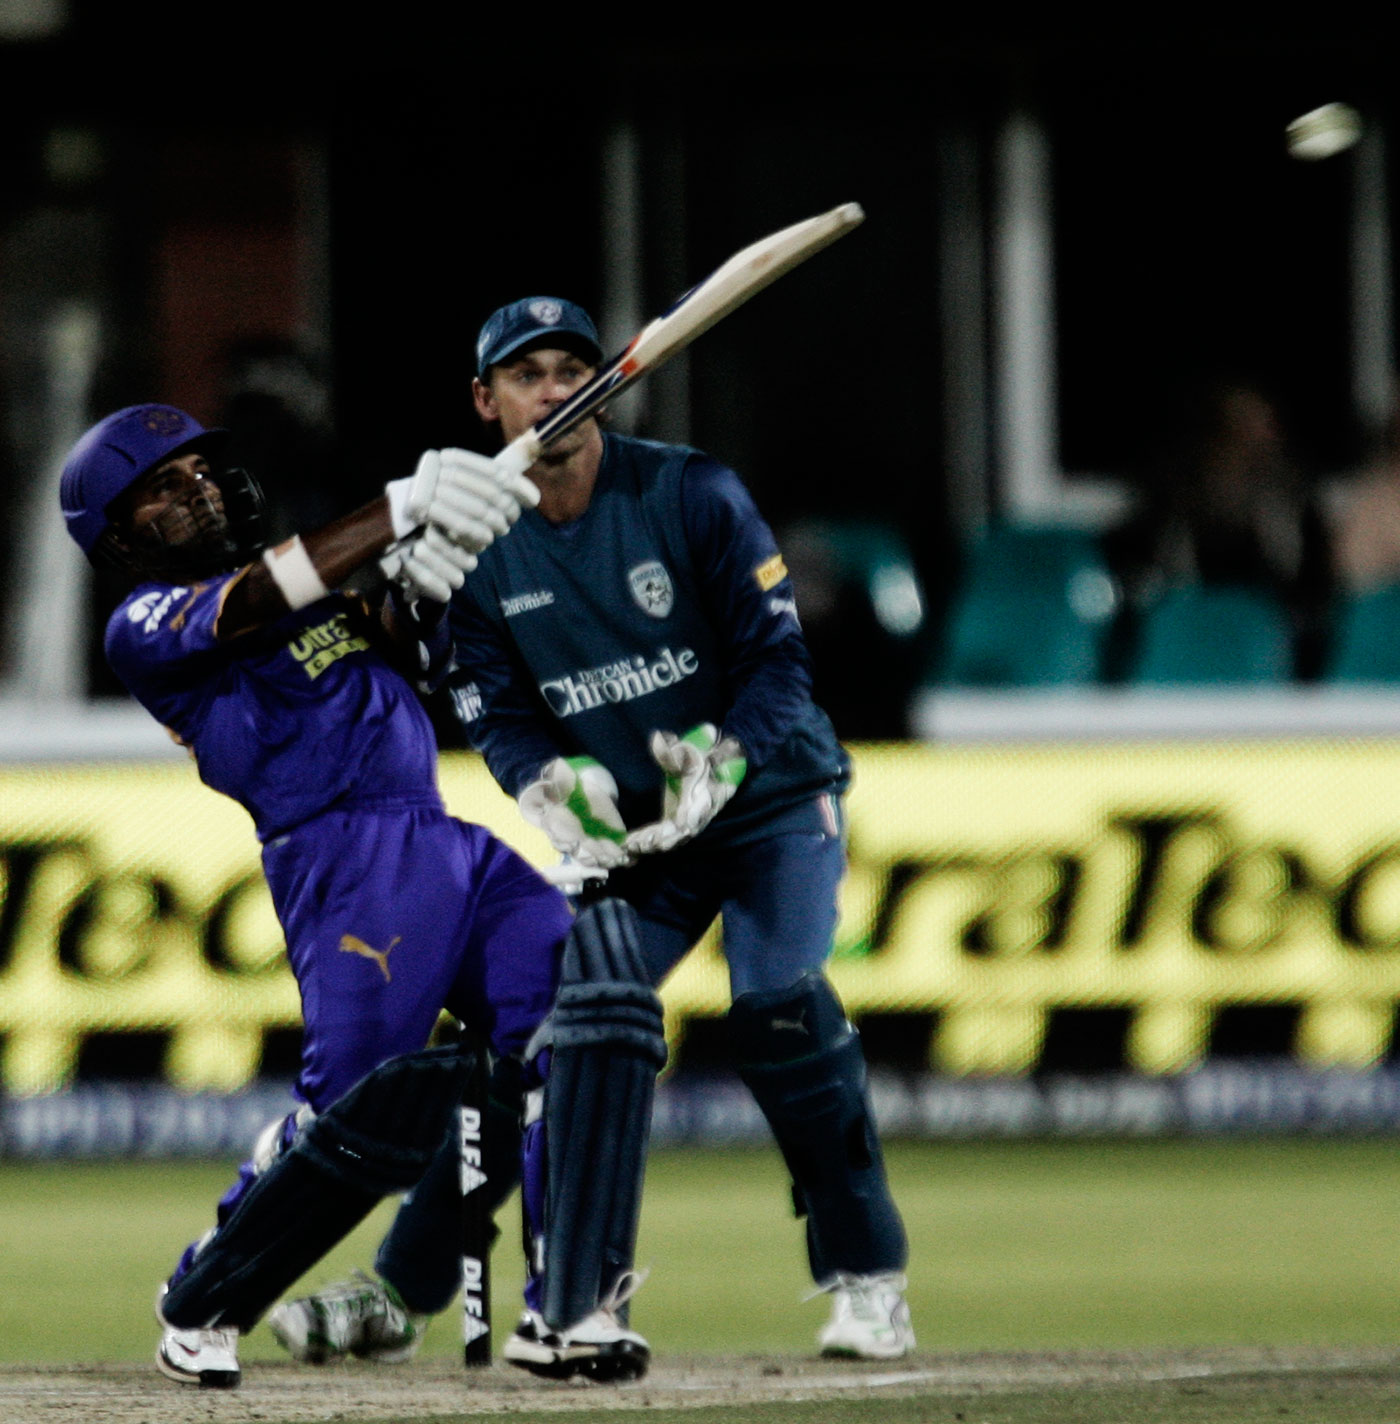 While he became a household name for his attacking play in the 2008 IPL, Swapnil Asnodkar only managed 98 runs from eight matches the next season